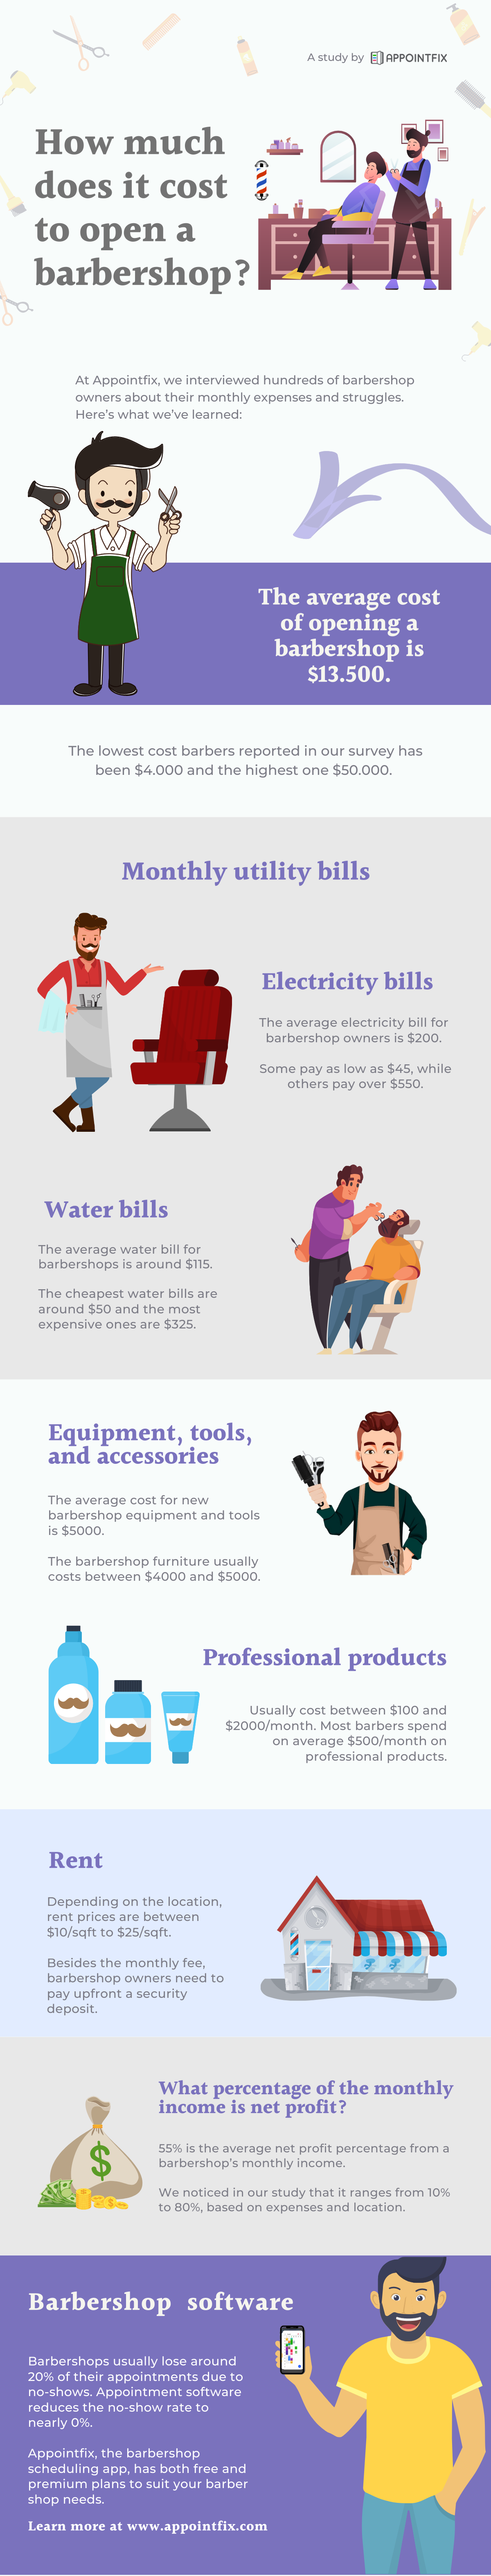 cost-of-running-a-barbershop